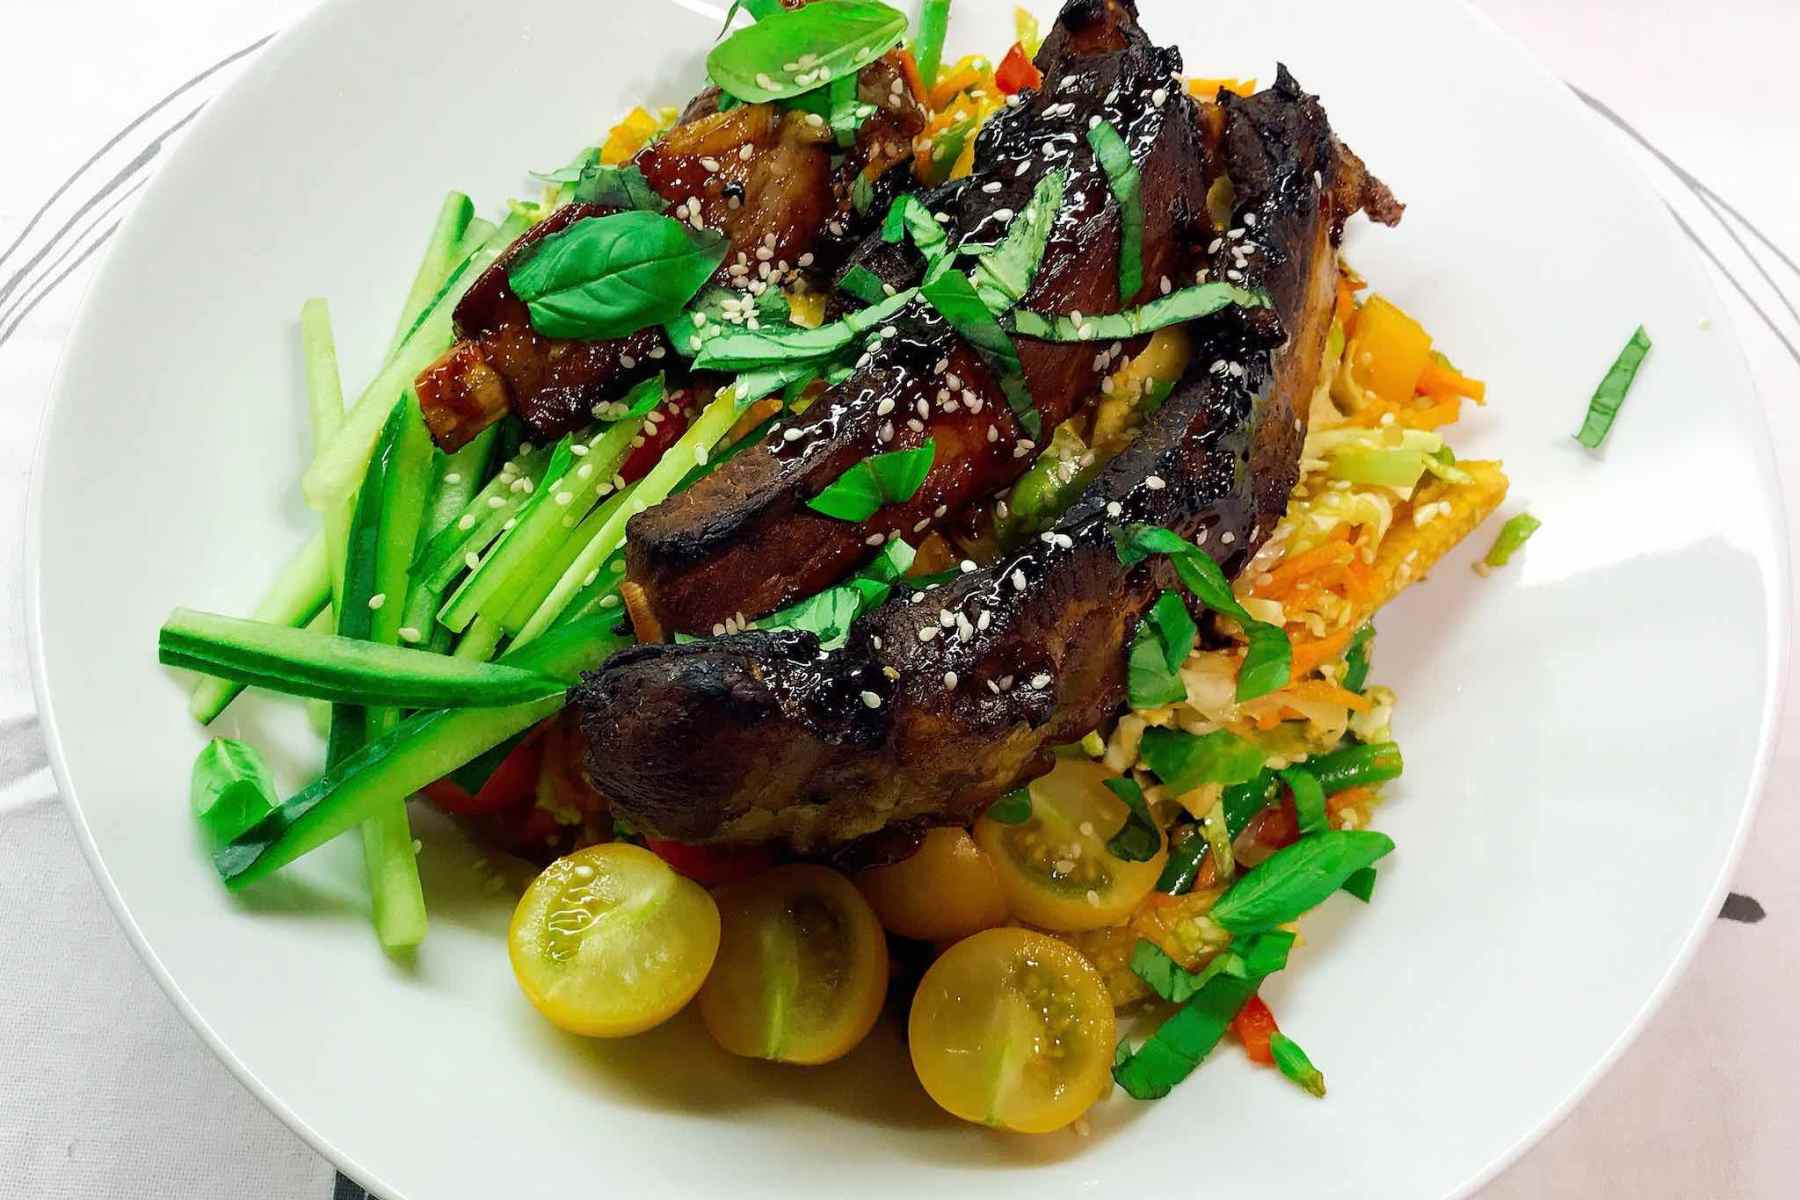 Pork ribs with noodle slaw